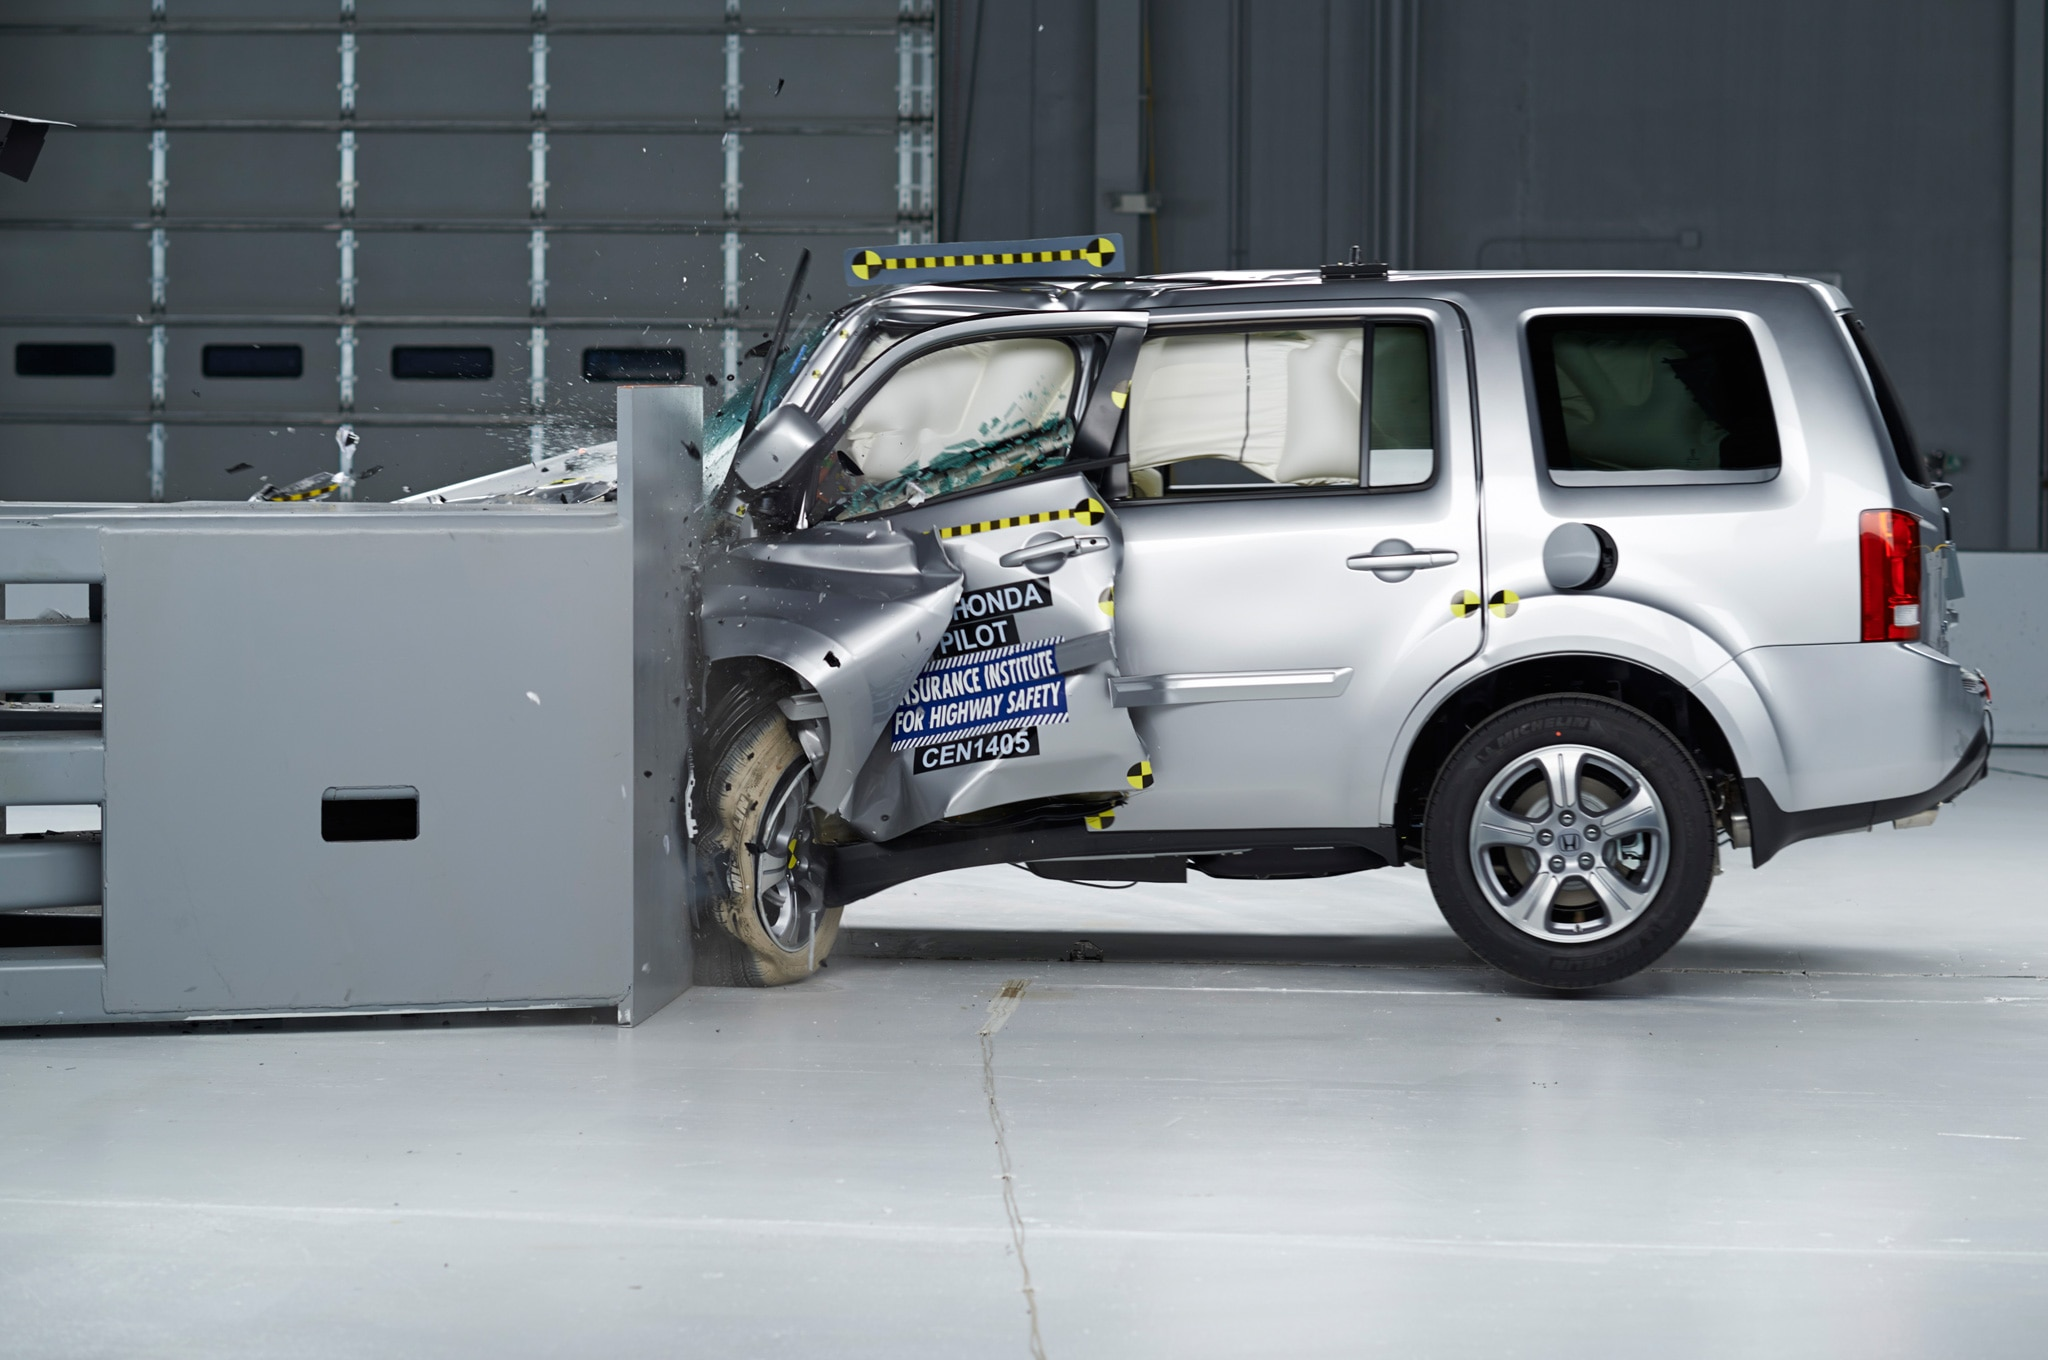 2014 Honda Pilot IIHS During Crash1